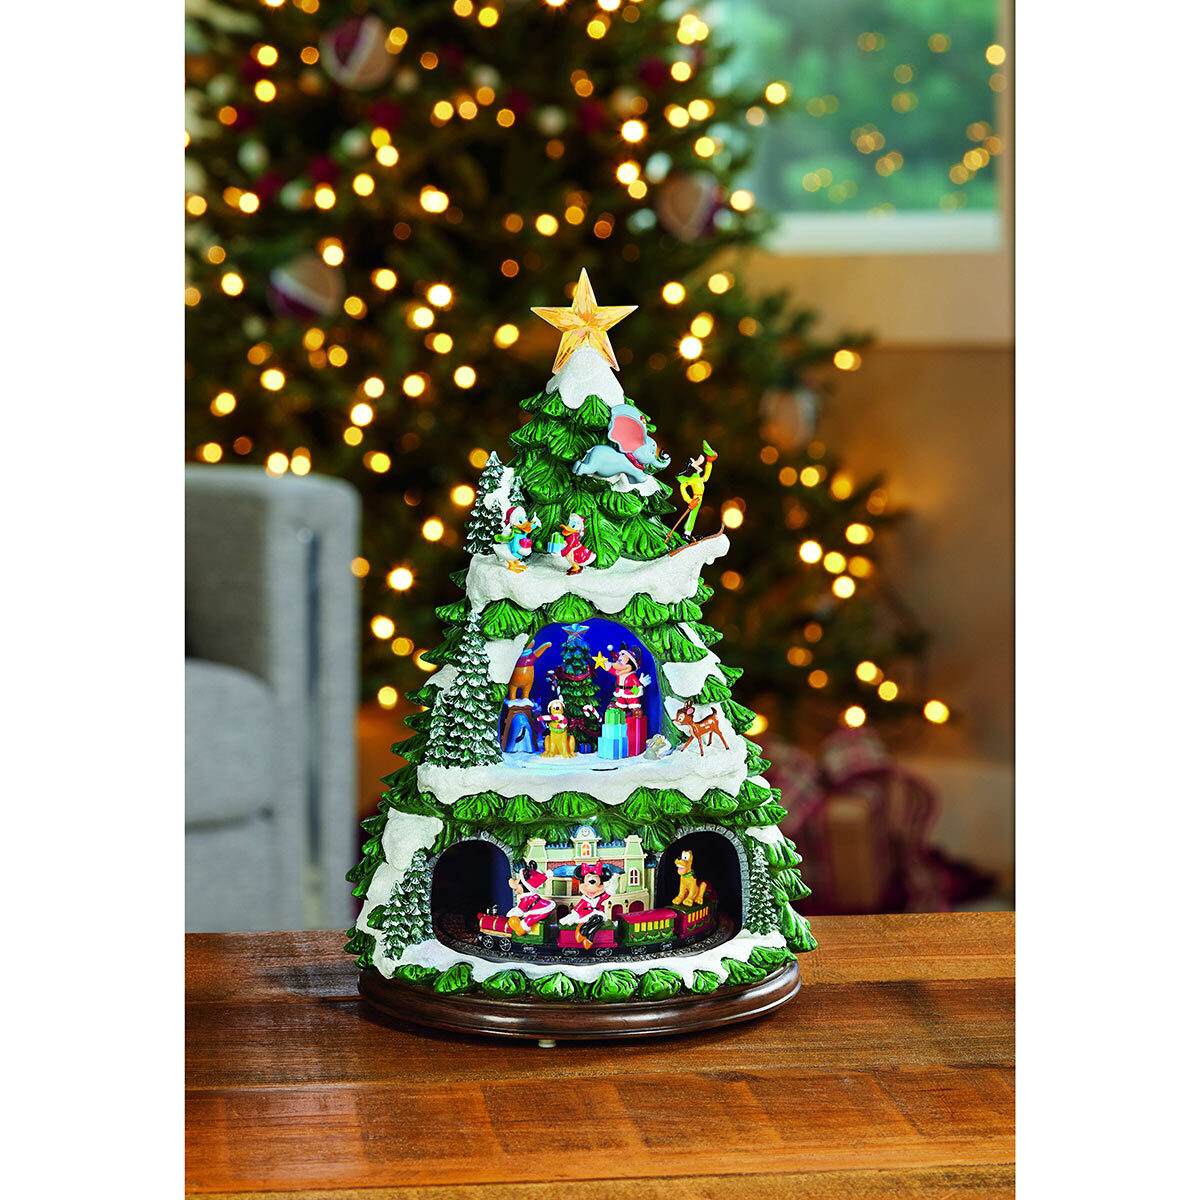 17 5 Inch 44 5 Cm Disney Animated Christmas Tree With Led Lights And Music Costco Uk